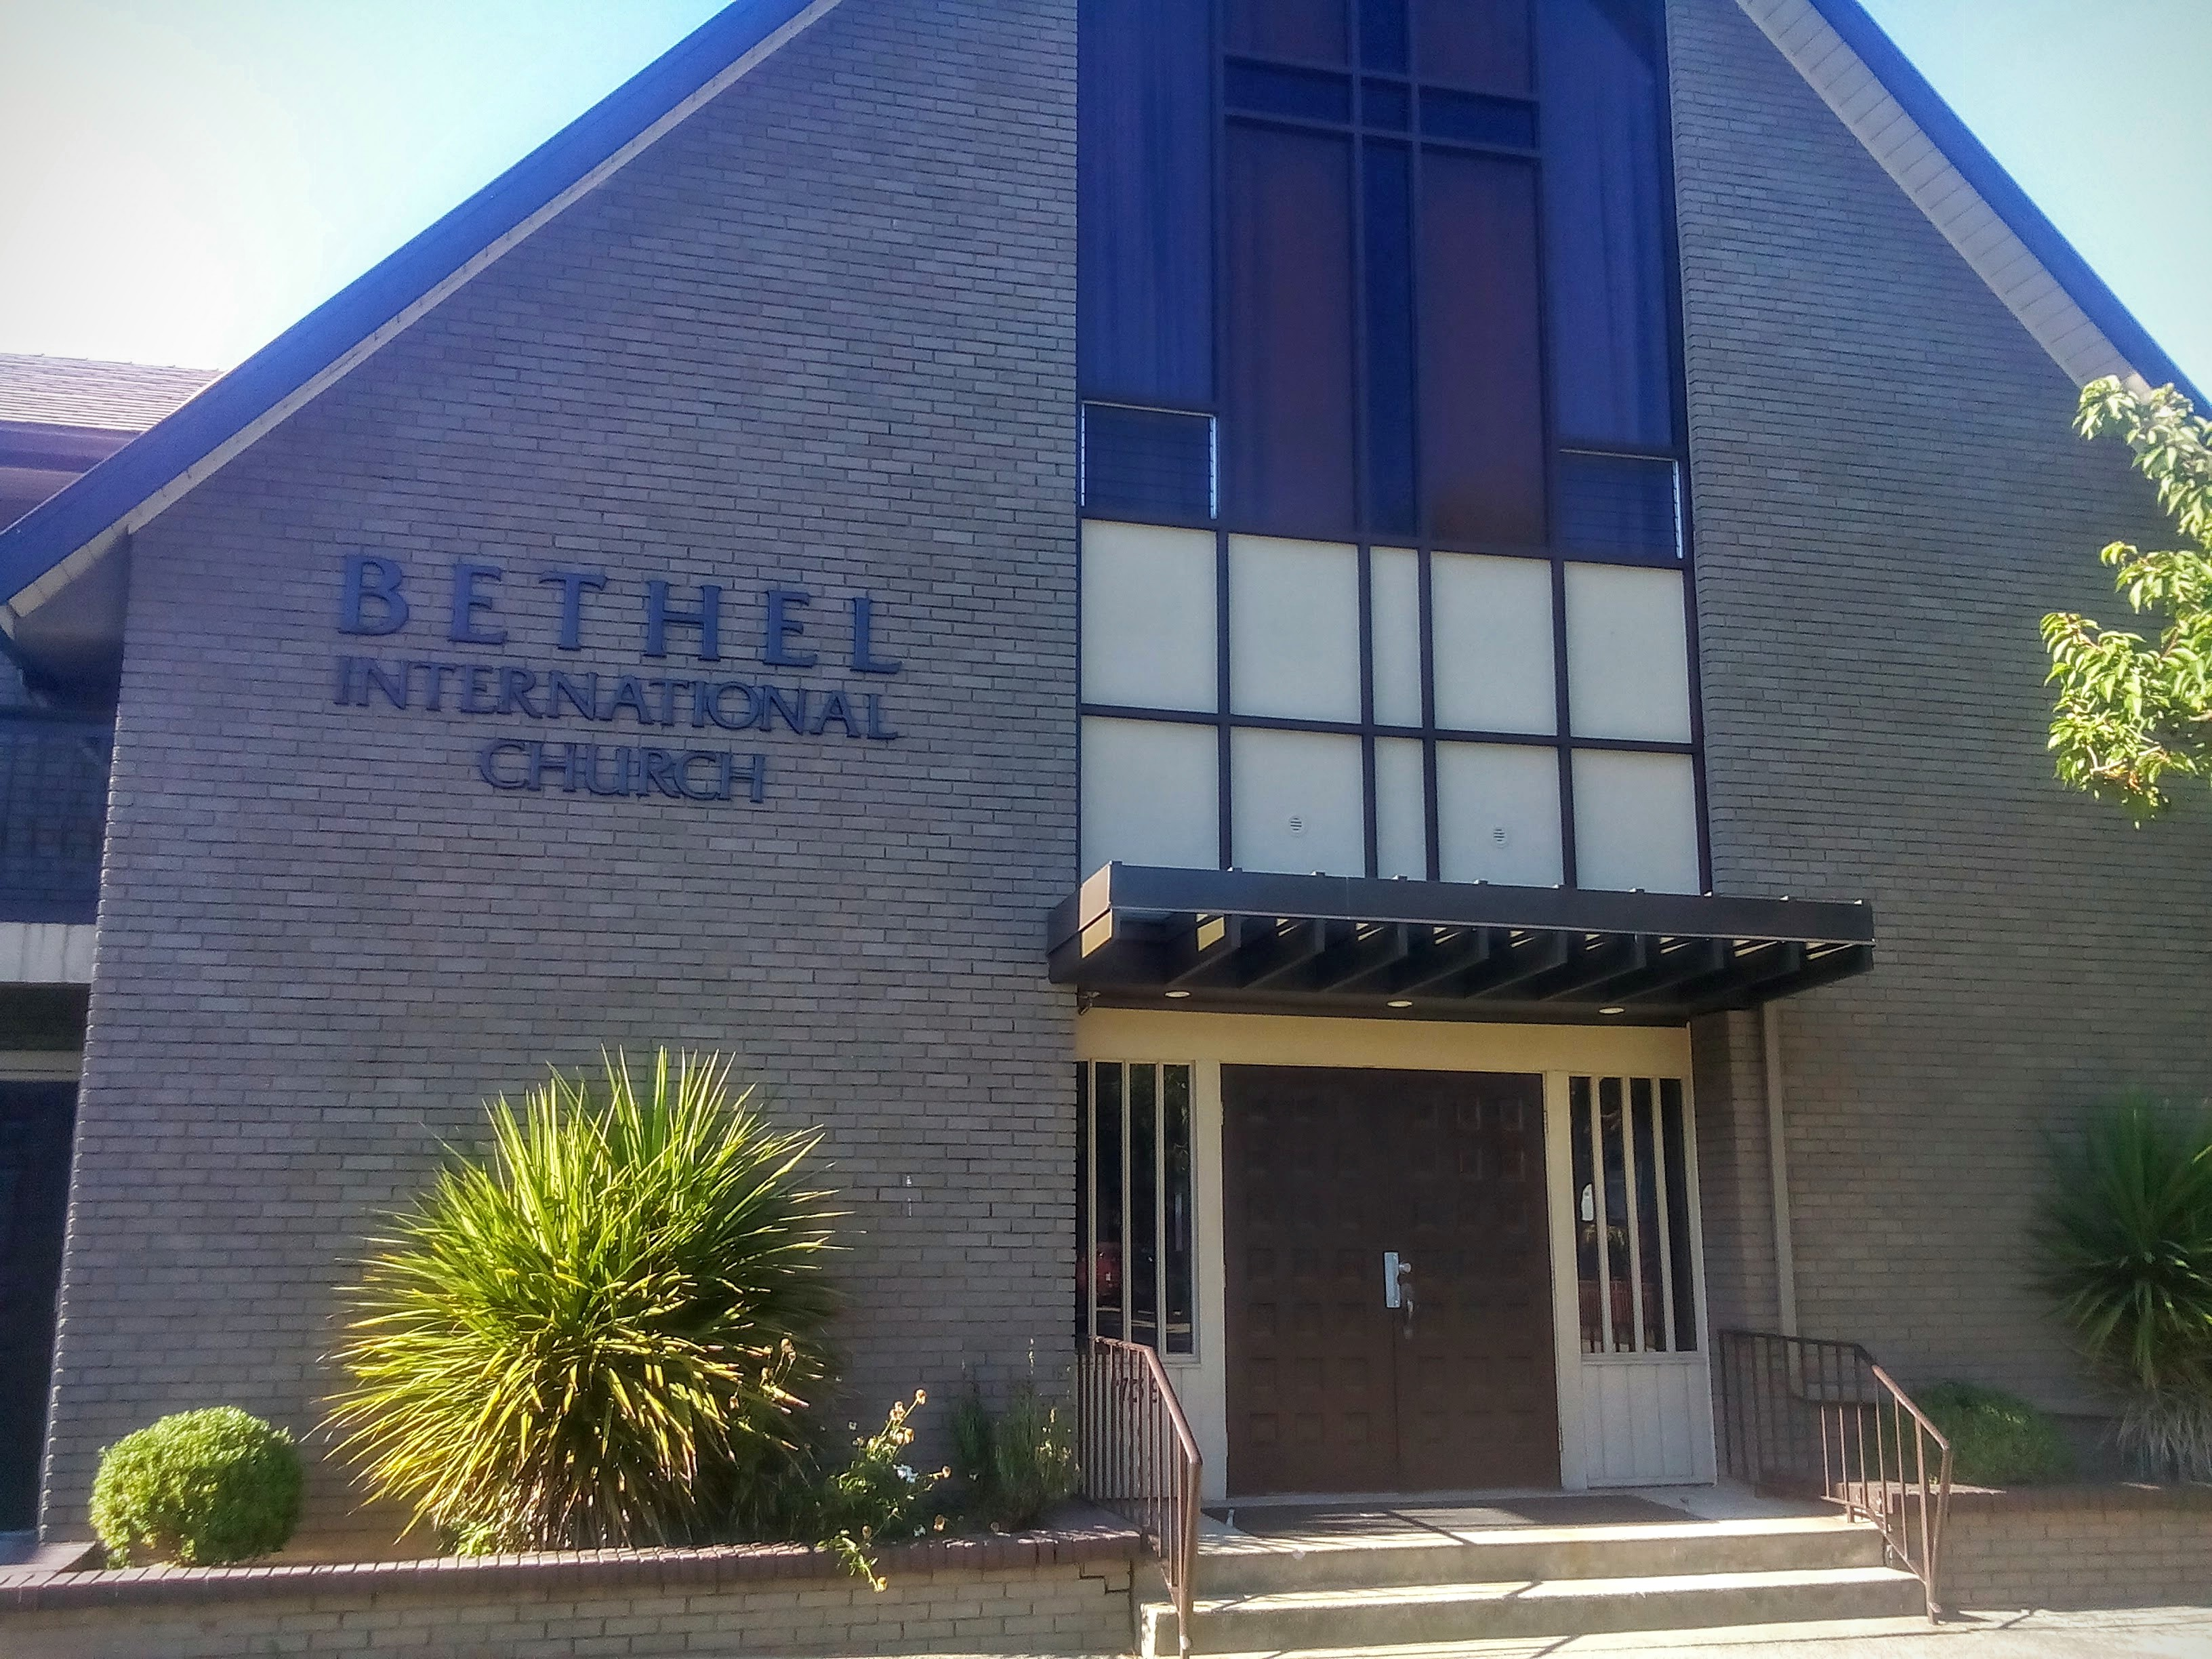 Bethel International Church on 33rd ave.